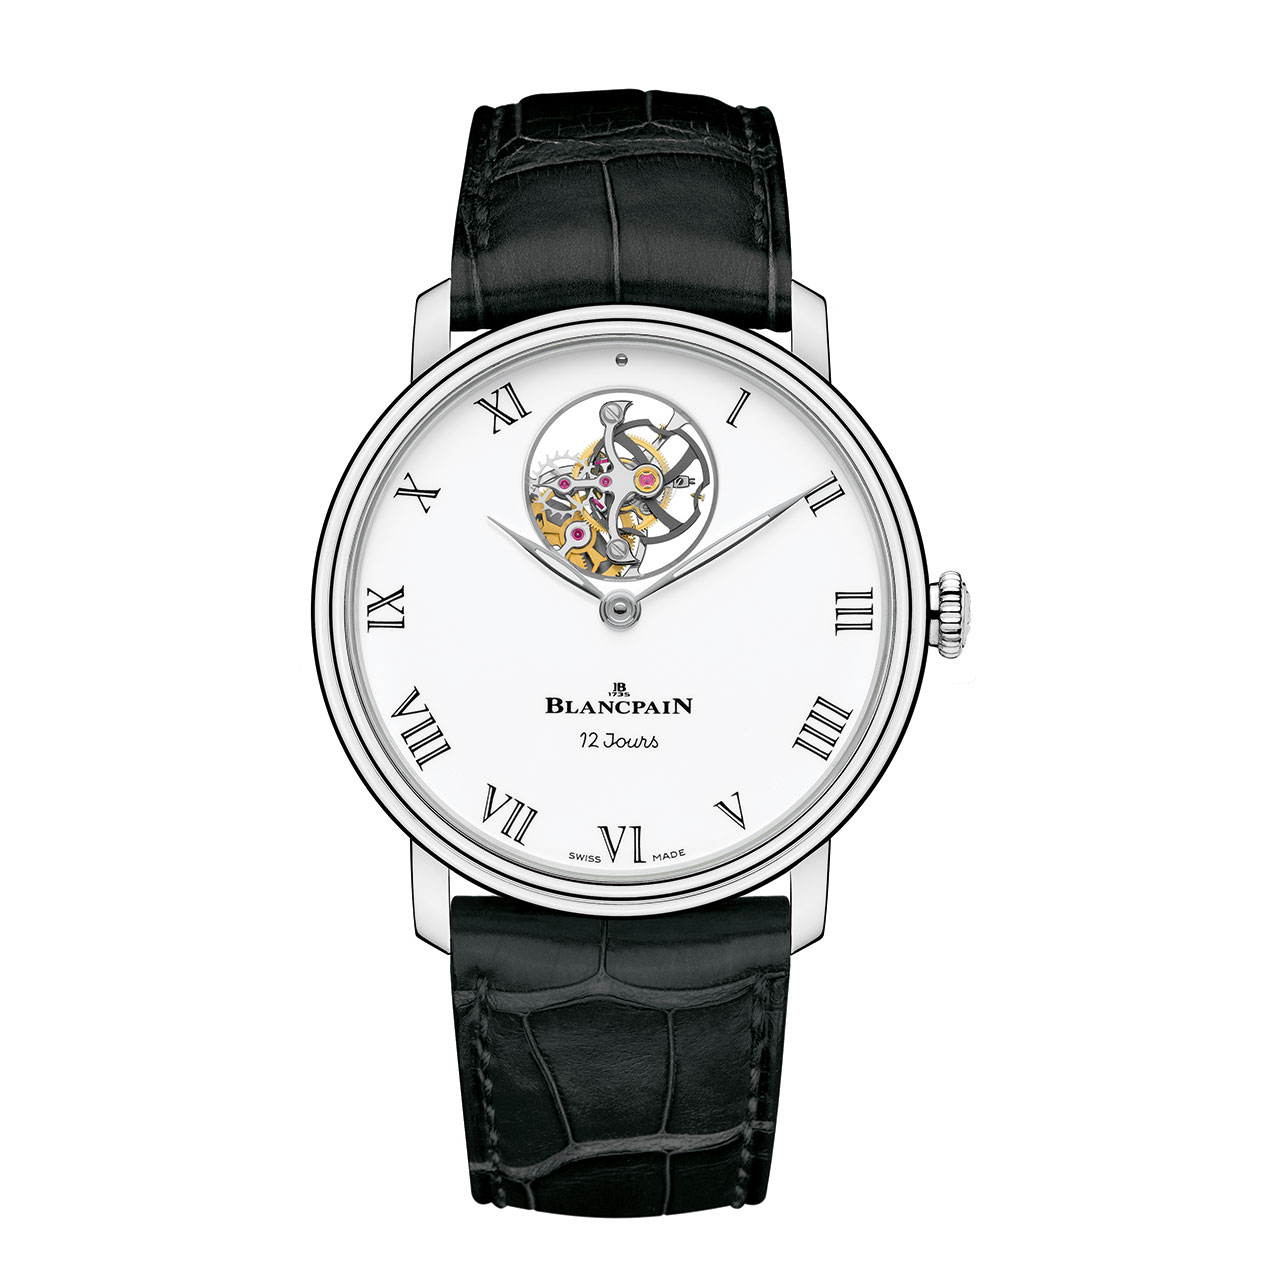 Blancpain Tourbillon Volant Une Minute 12 Jours Self-winding Watch